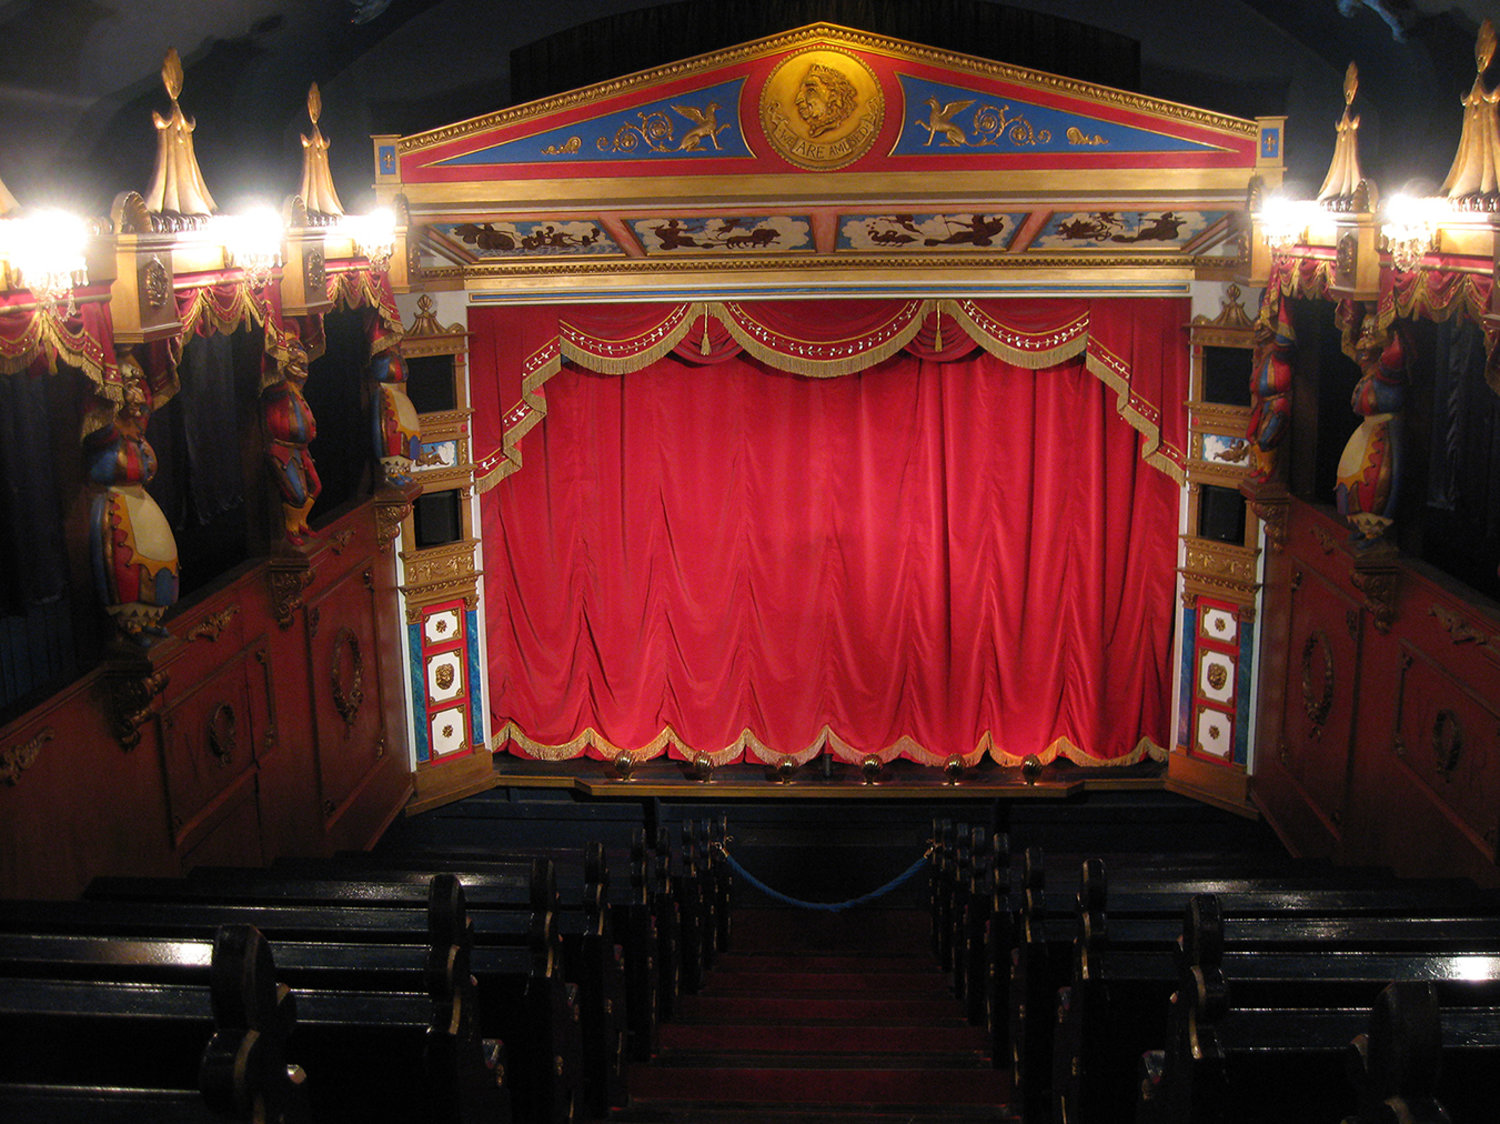 Interior of Biggar Puppet Theatre (South Lanarkshire, Scotland) in 2016, designed by Ian Purves (1986). Photo courtesy of Collection: Jill Purves (International Purves Puppets)